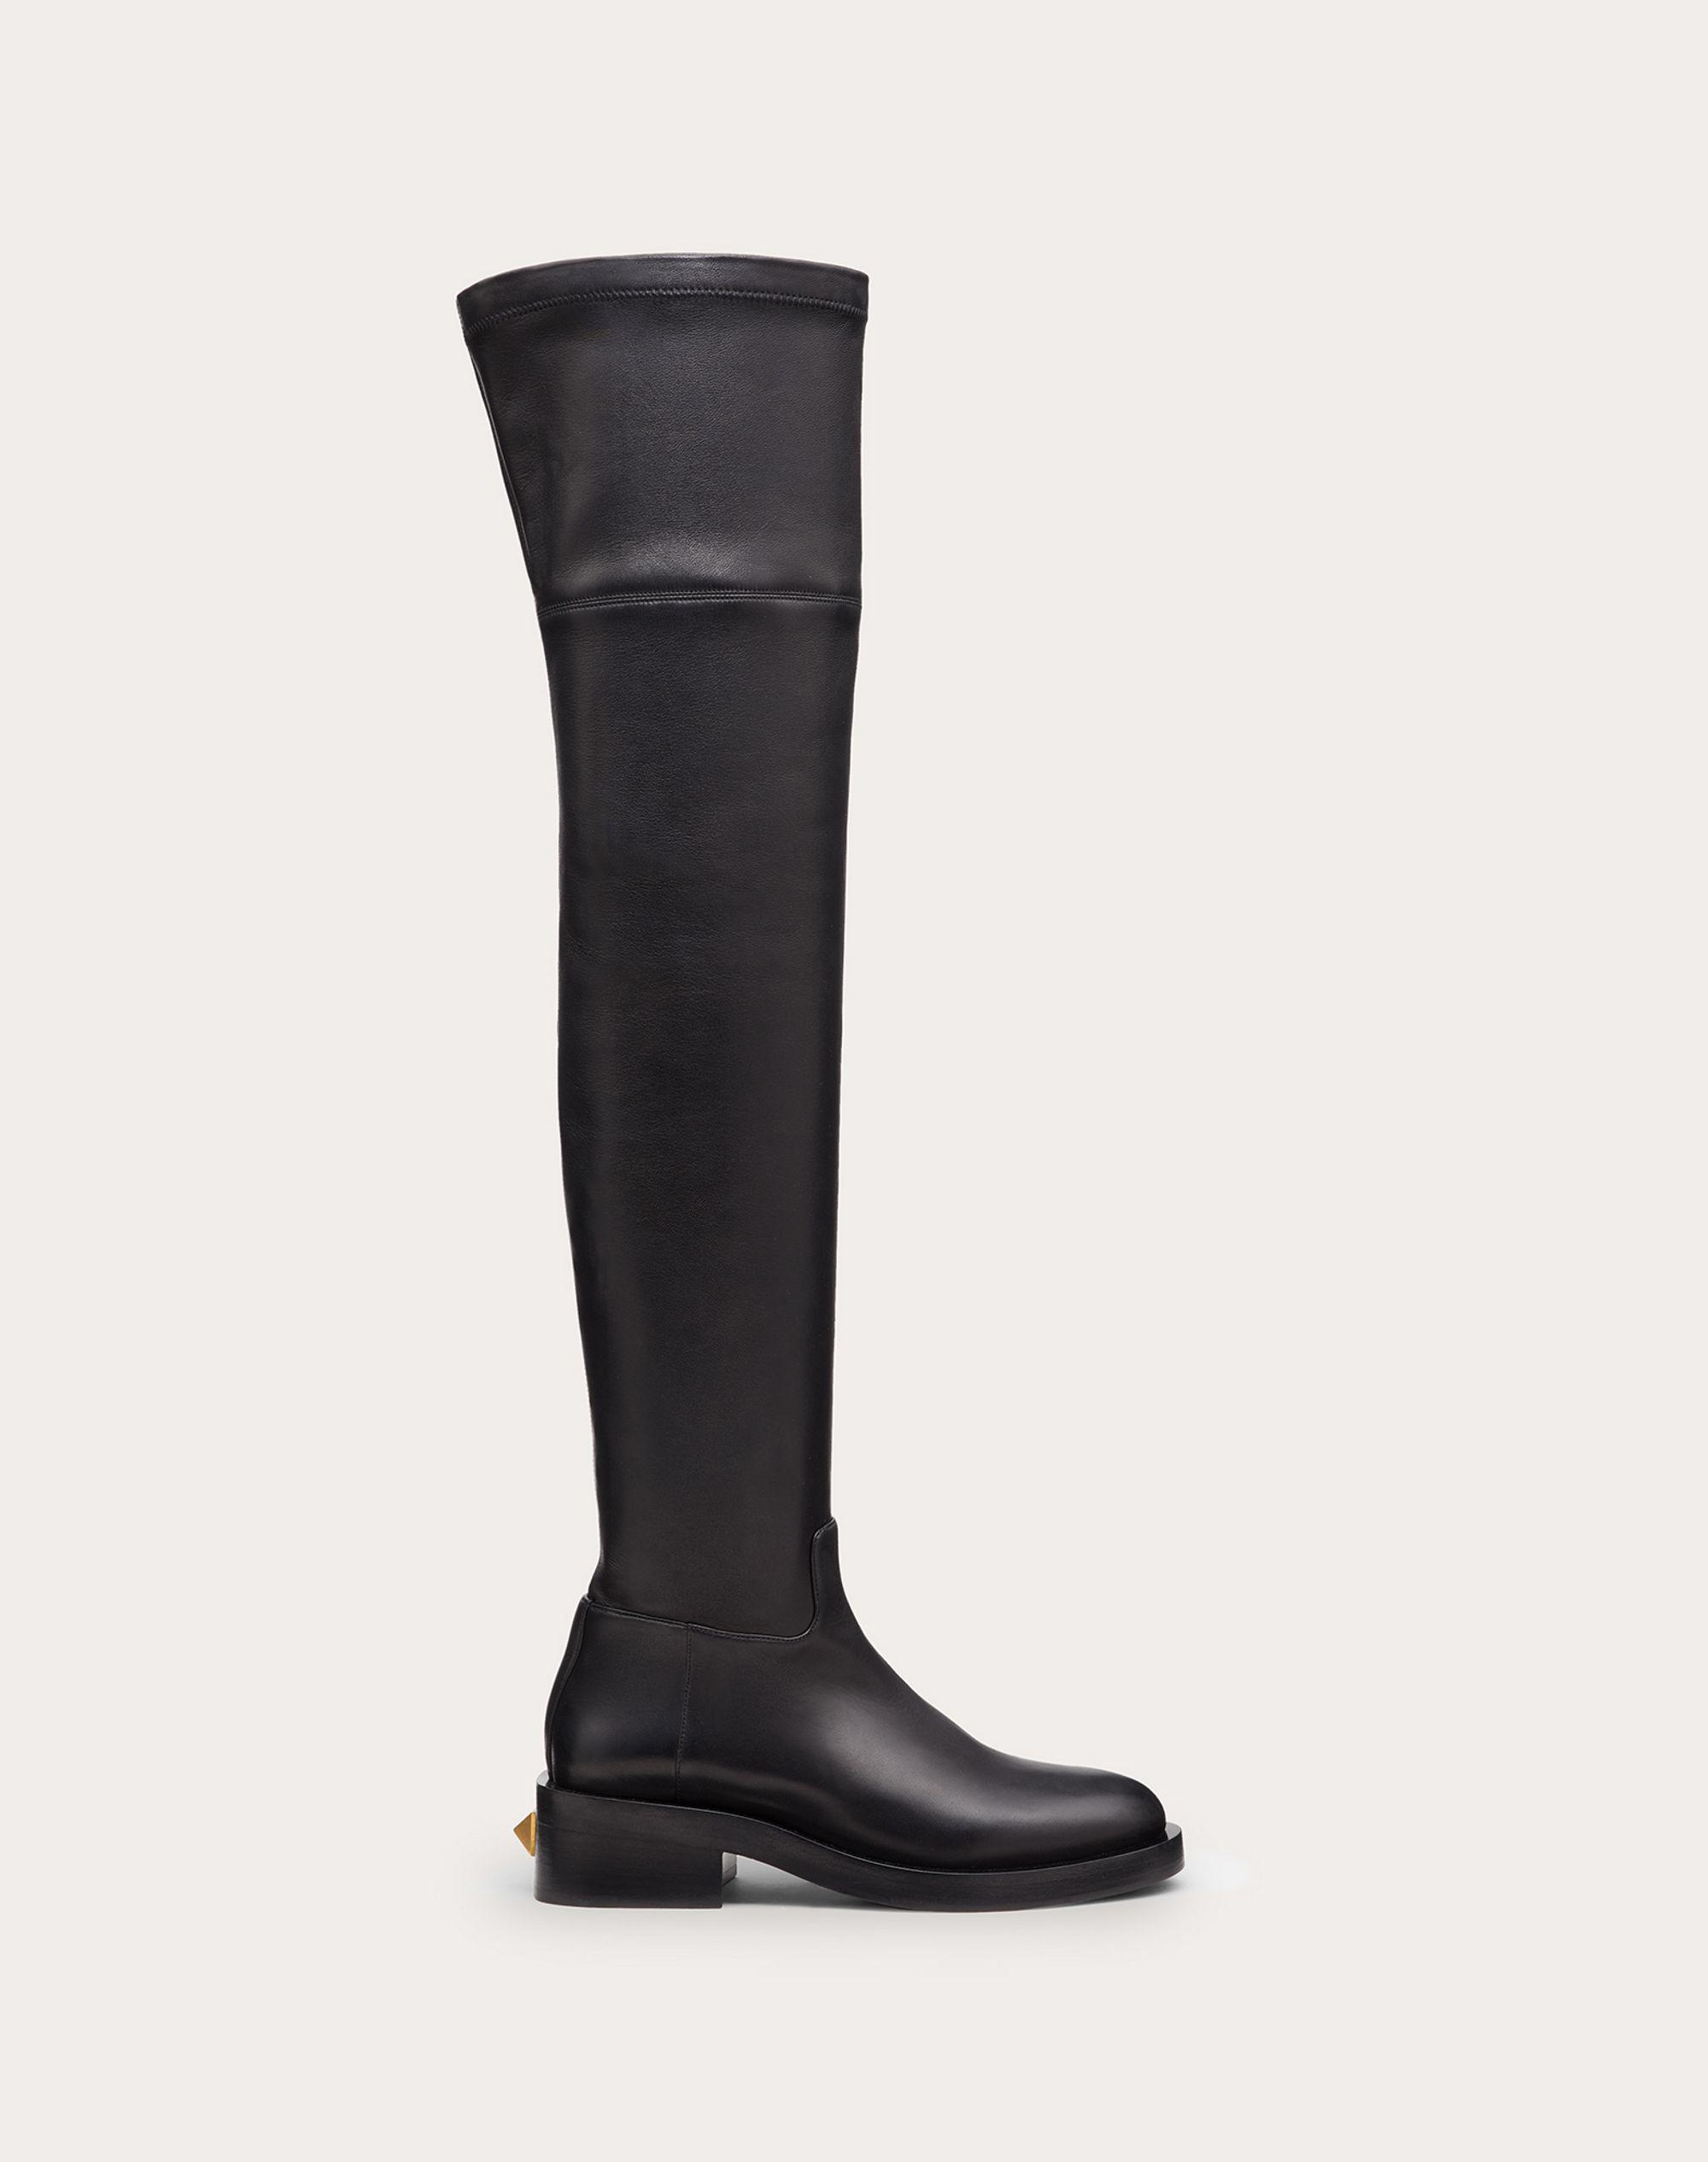 ROMAN STUD STRETCH NAPPA OVER-THE-KNEE BOOT 30MM